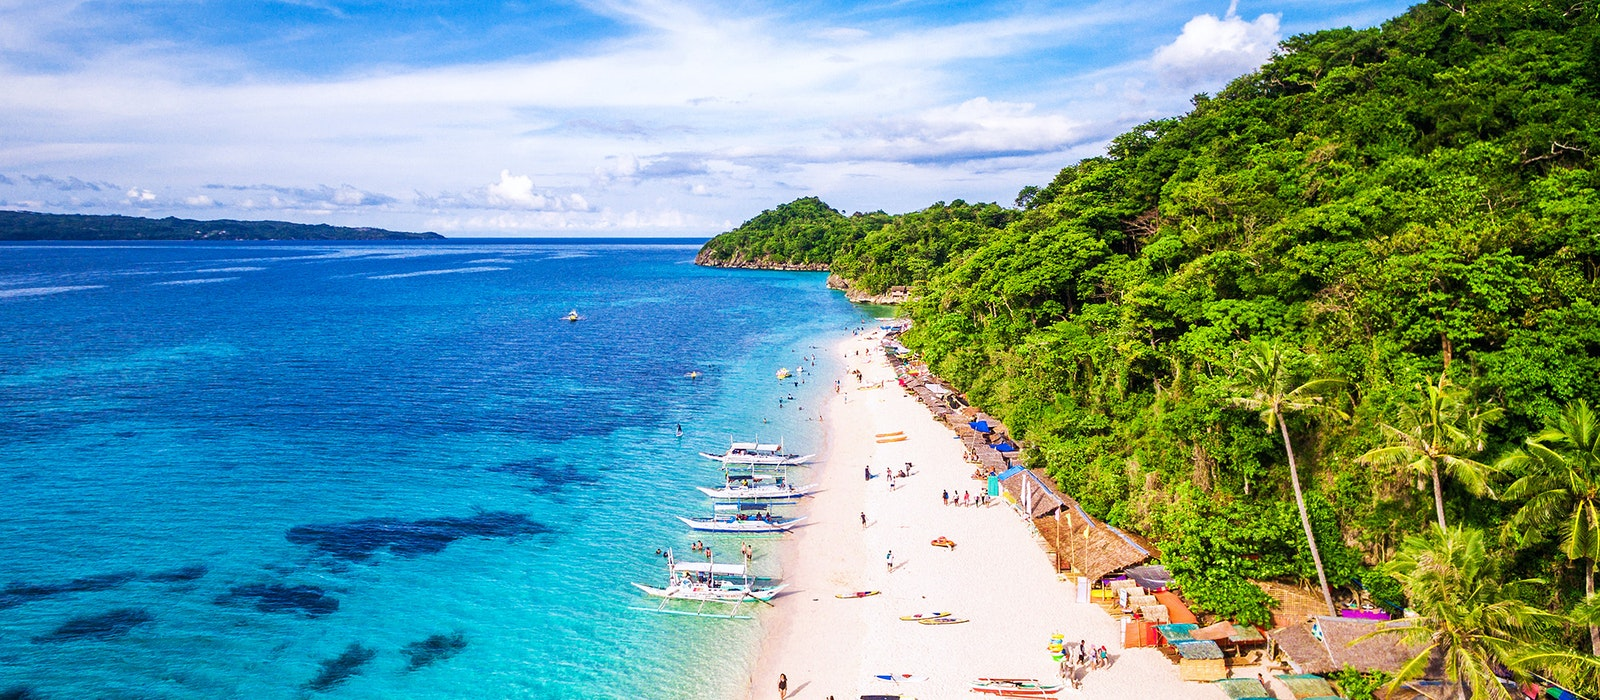 Original boracay beach.jpg?1540583963?ixlib=rails 0.3